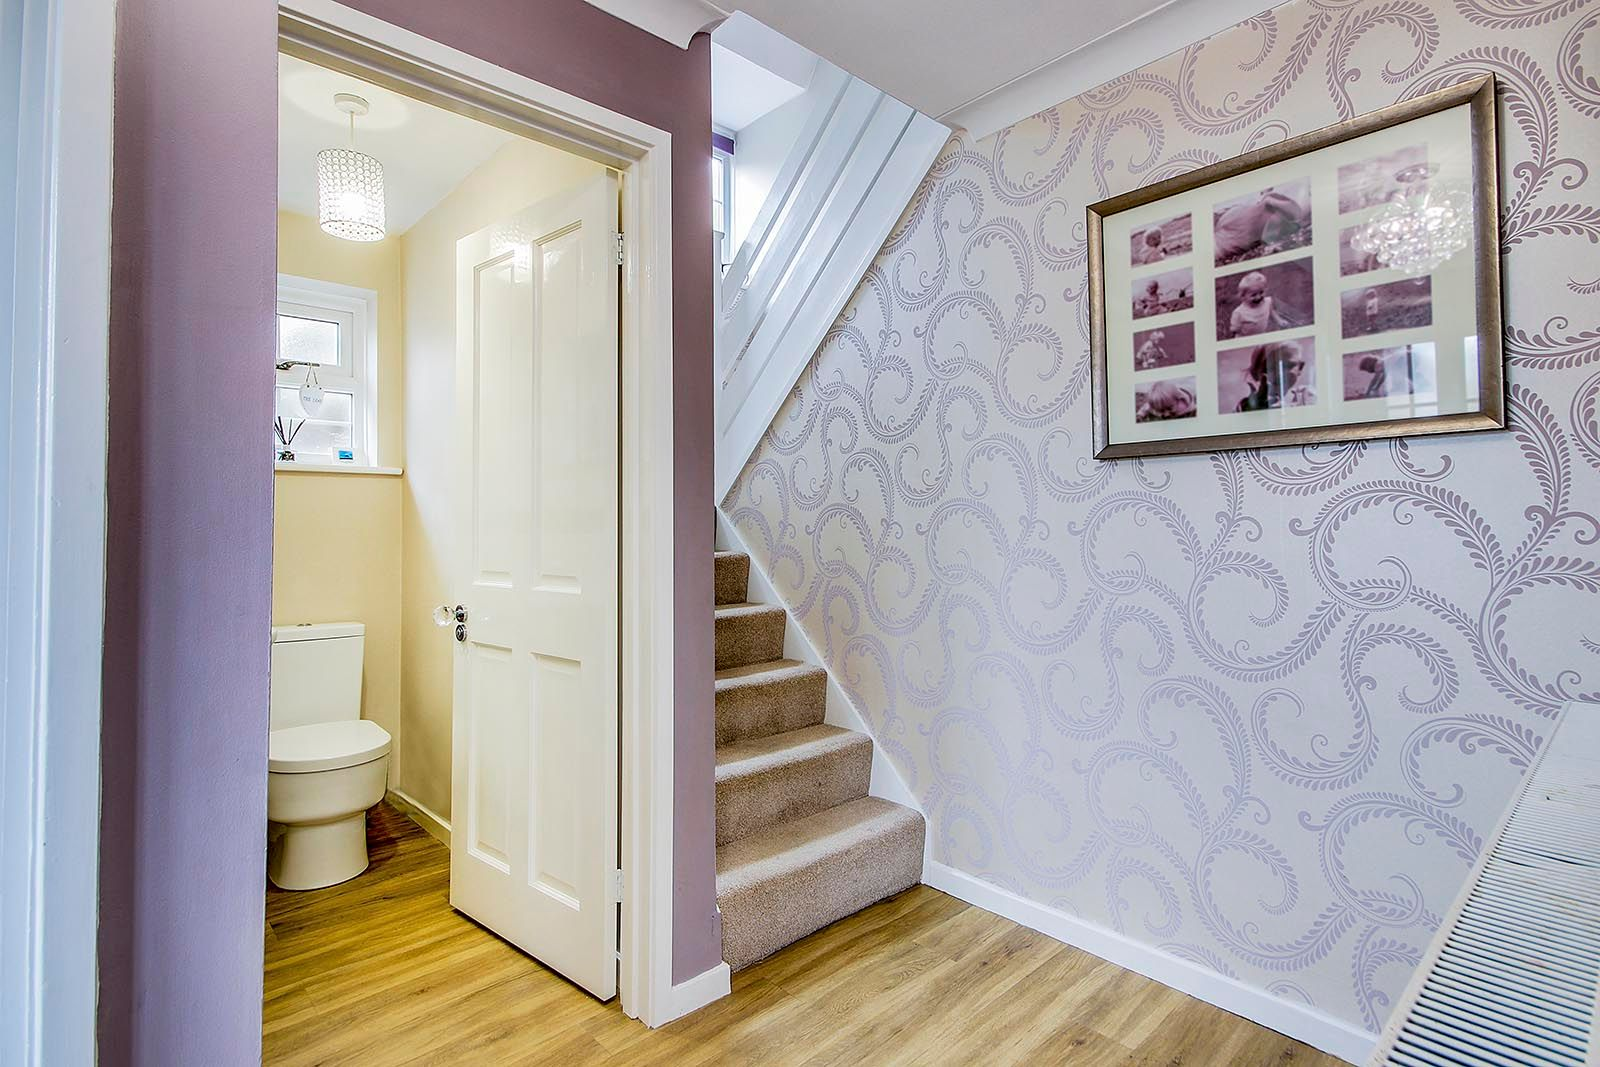 3 bed house for sale in Woodlands Close (COMP AUG 19) 9